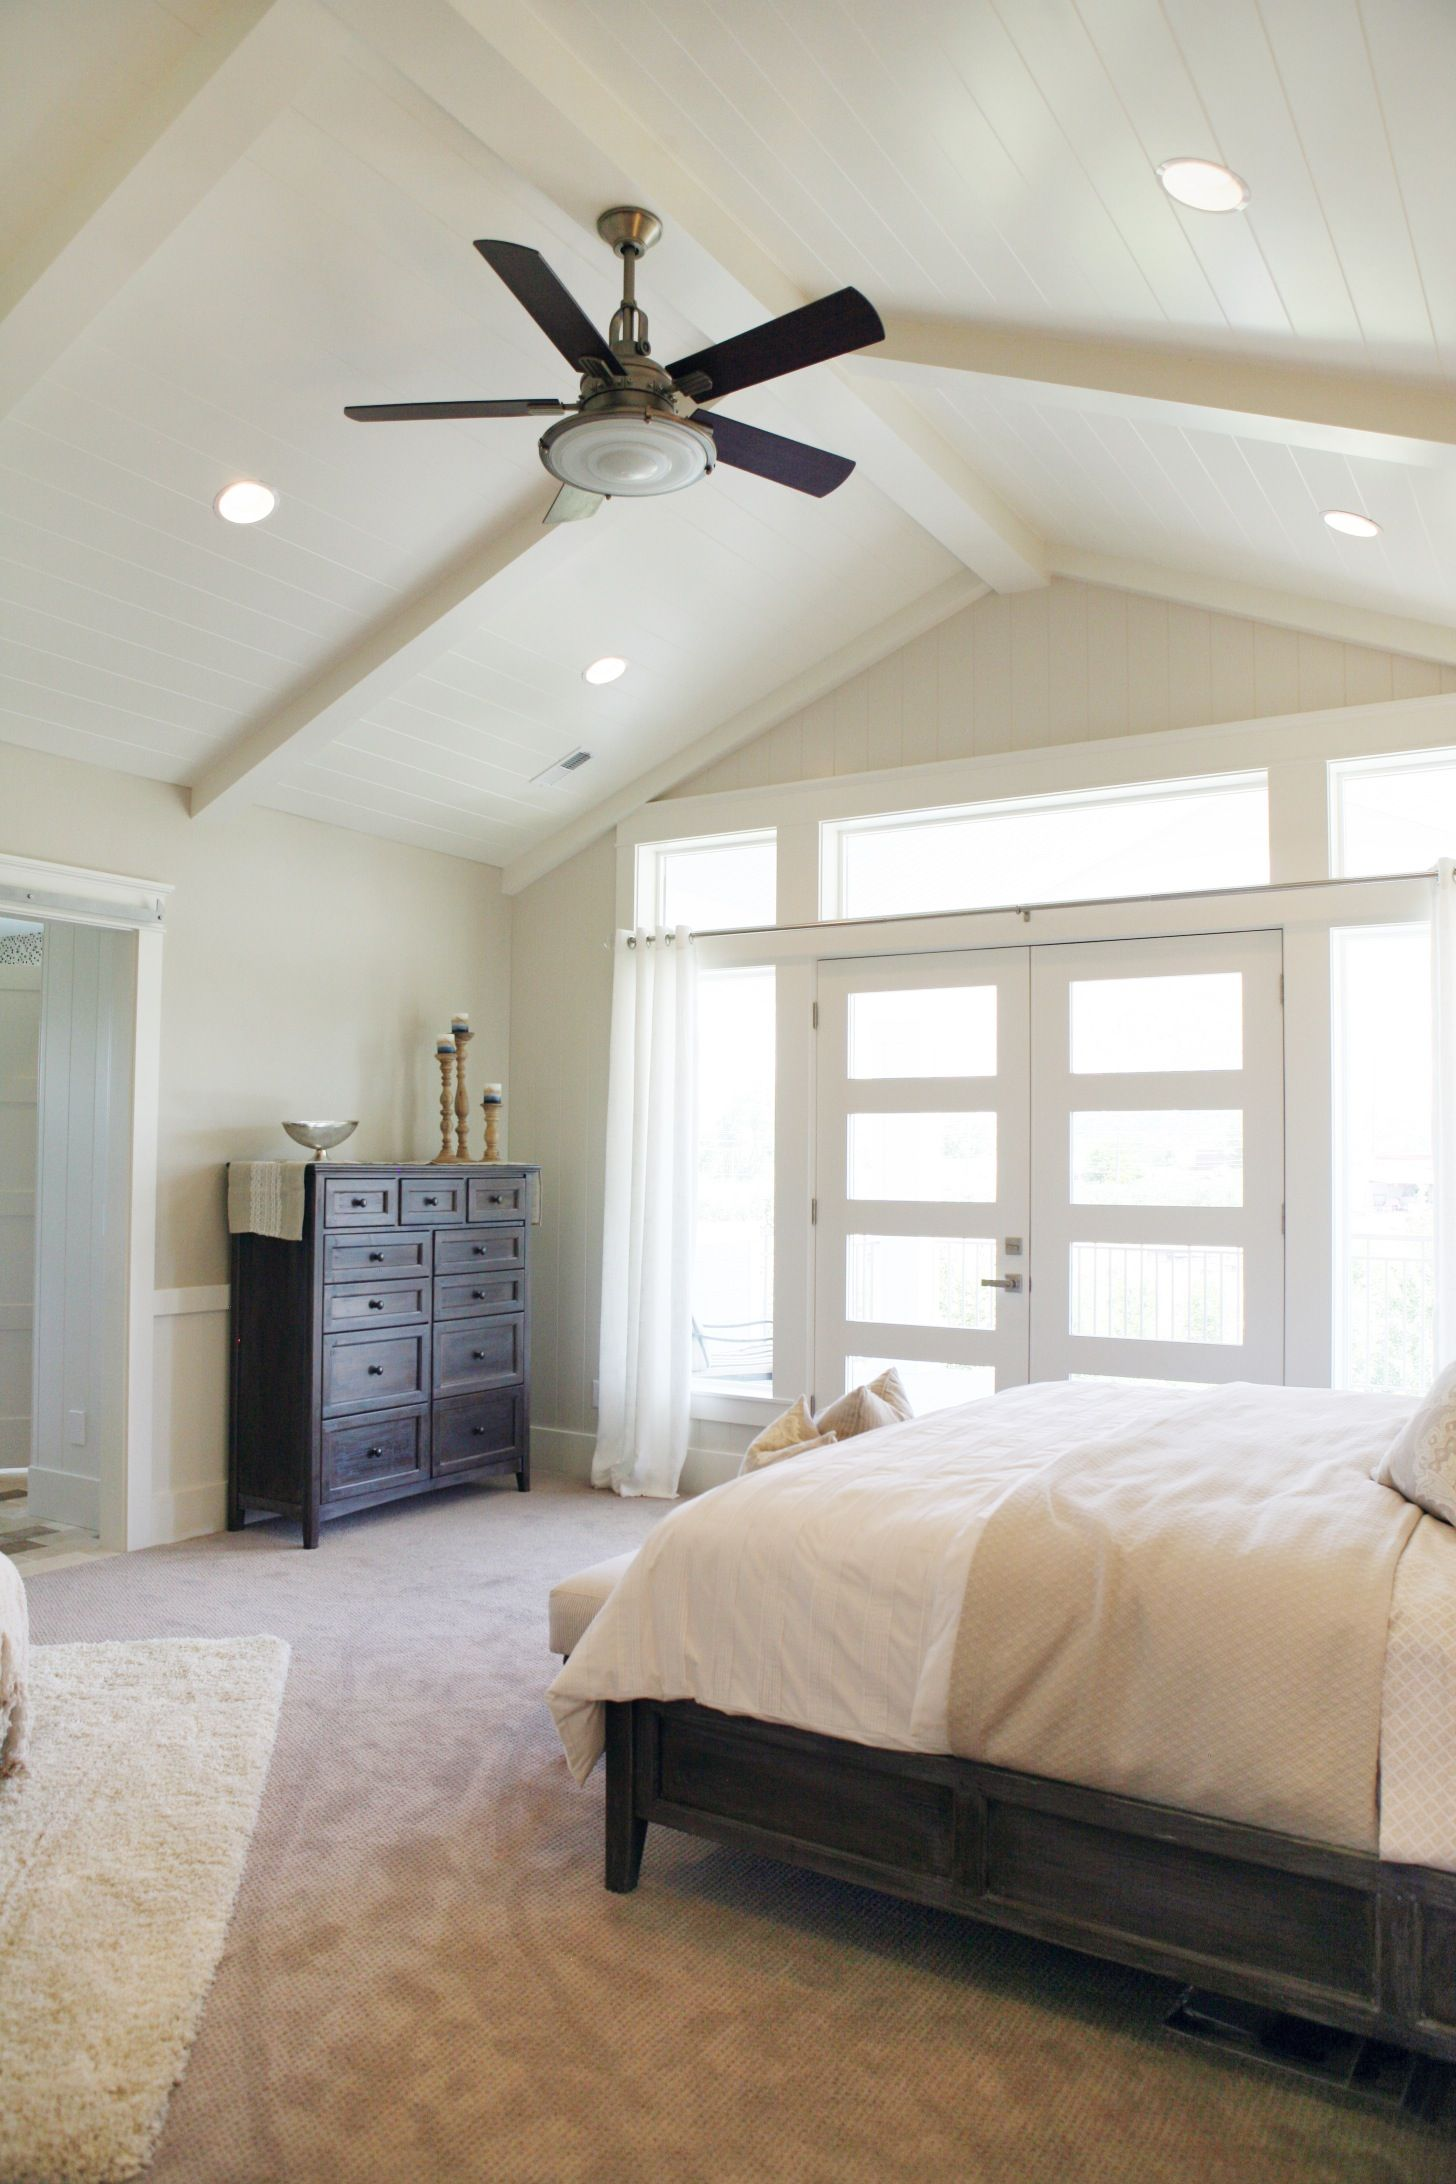 installing ceiling fan on vaulted ceiling can appear like an